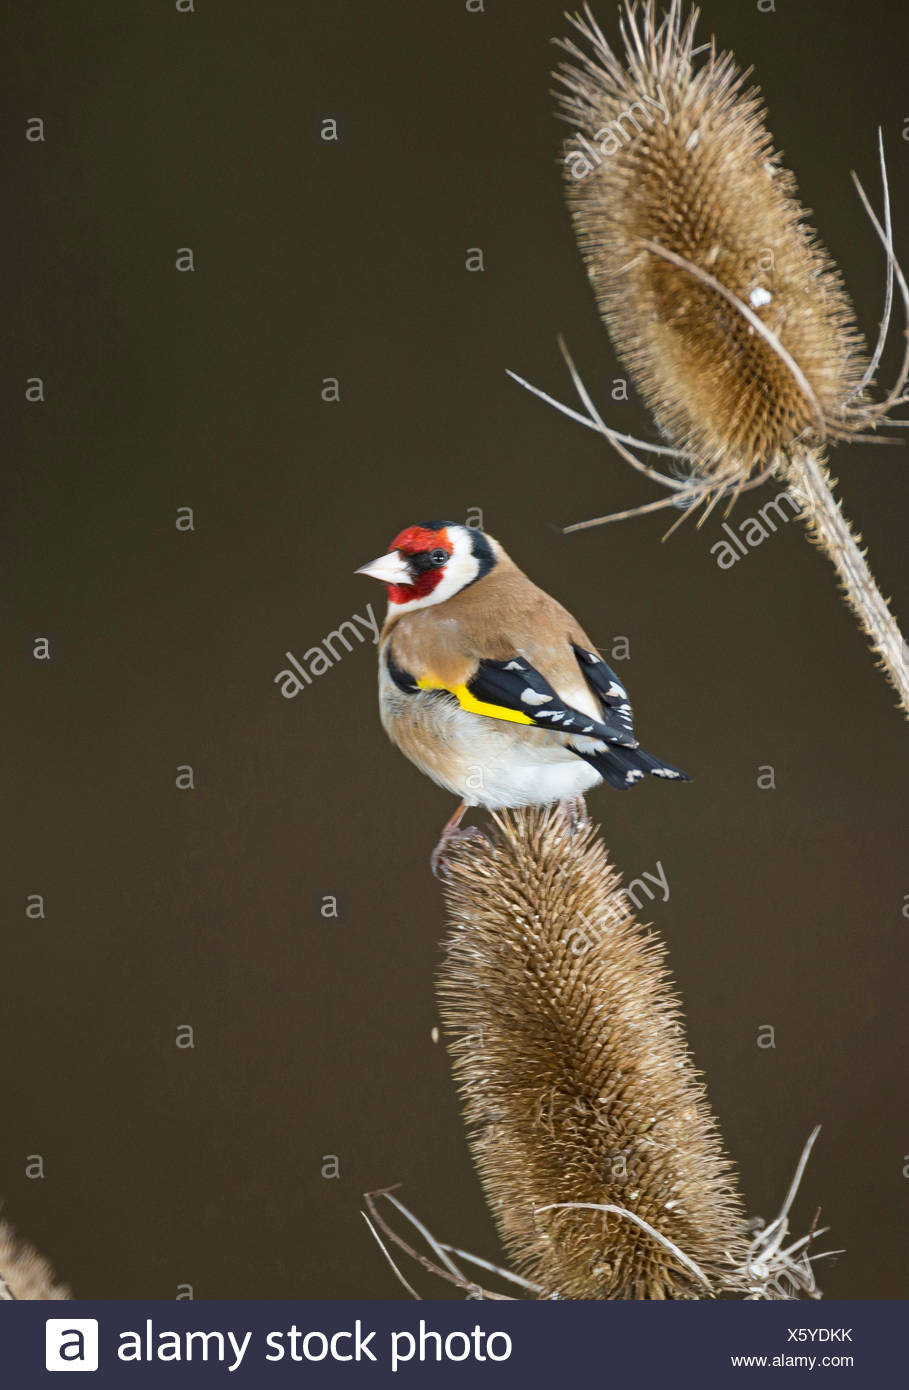 Eurasian goldfinch (Carduelis carduelis), sitting on infructescence of teazle, Germany Stock Photo